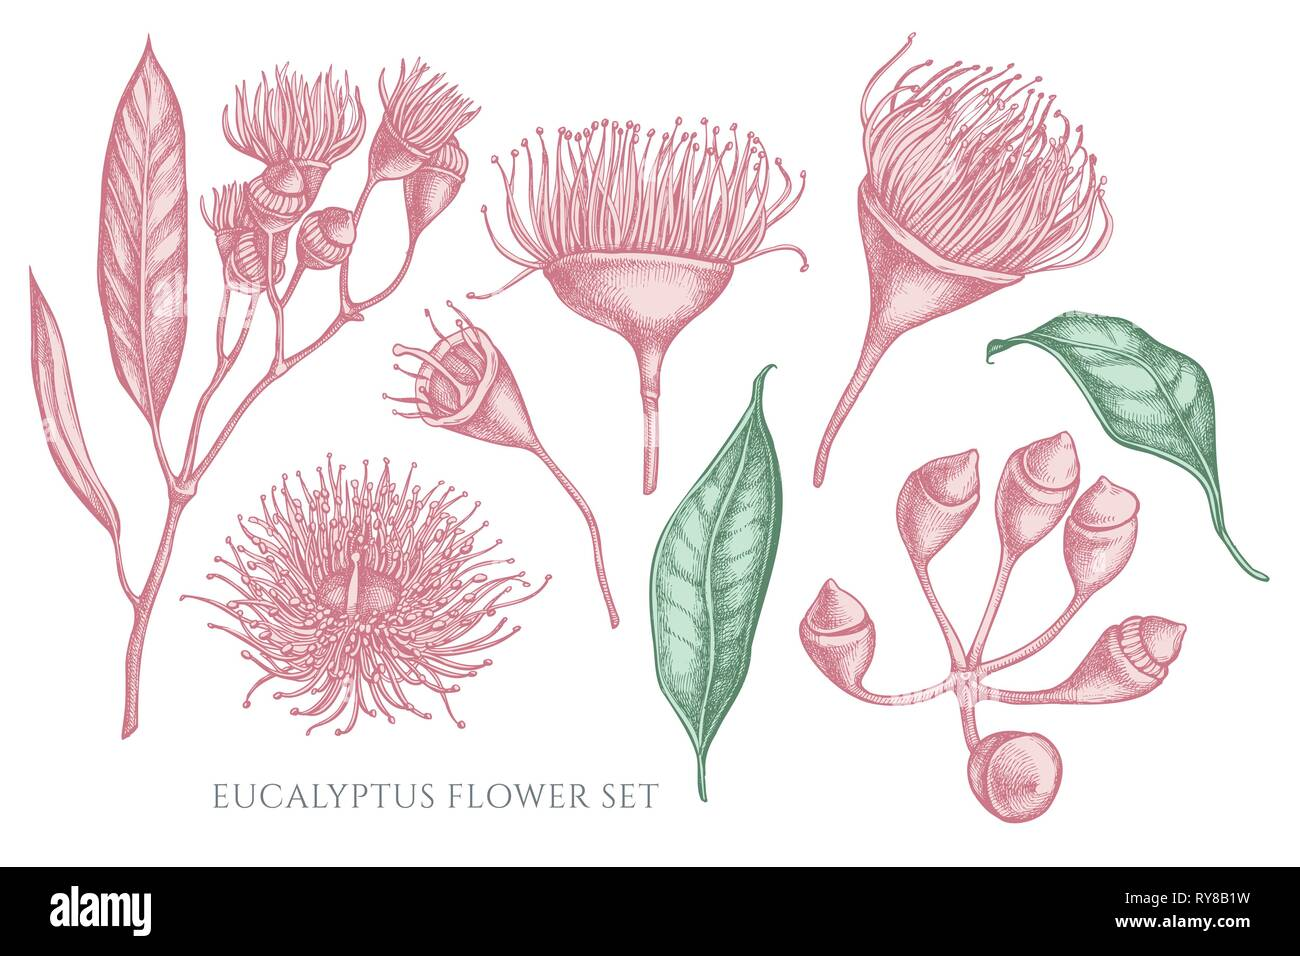 Vector collection of hand drawn pastel eucalyptus flower - Stock Vector